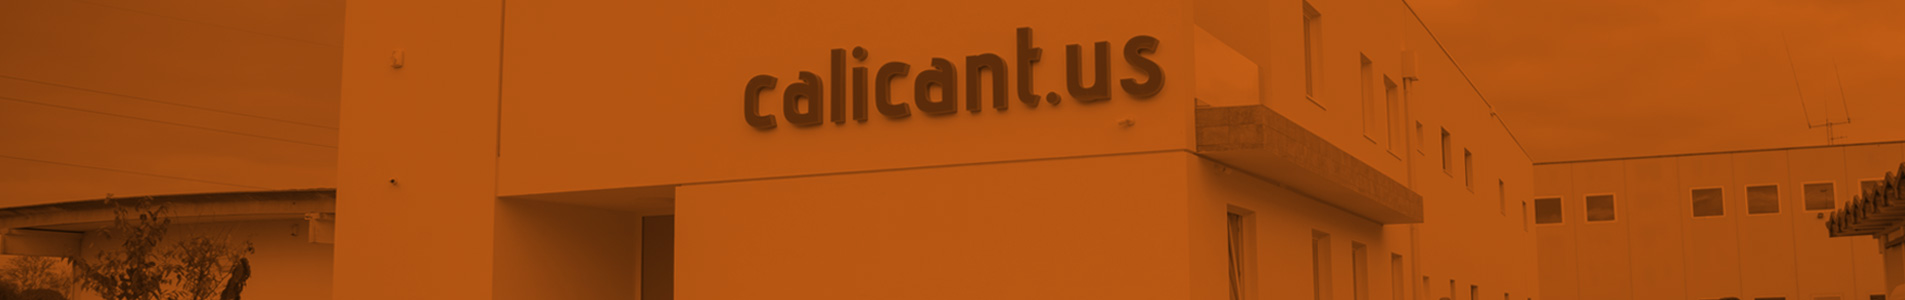 Prestashop PHP Developer | calicant.us